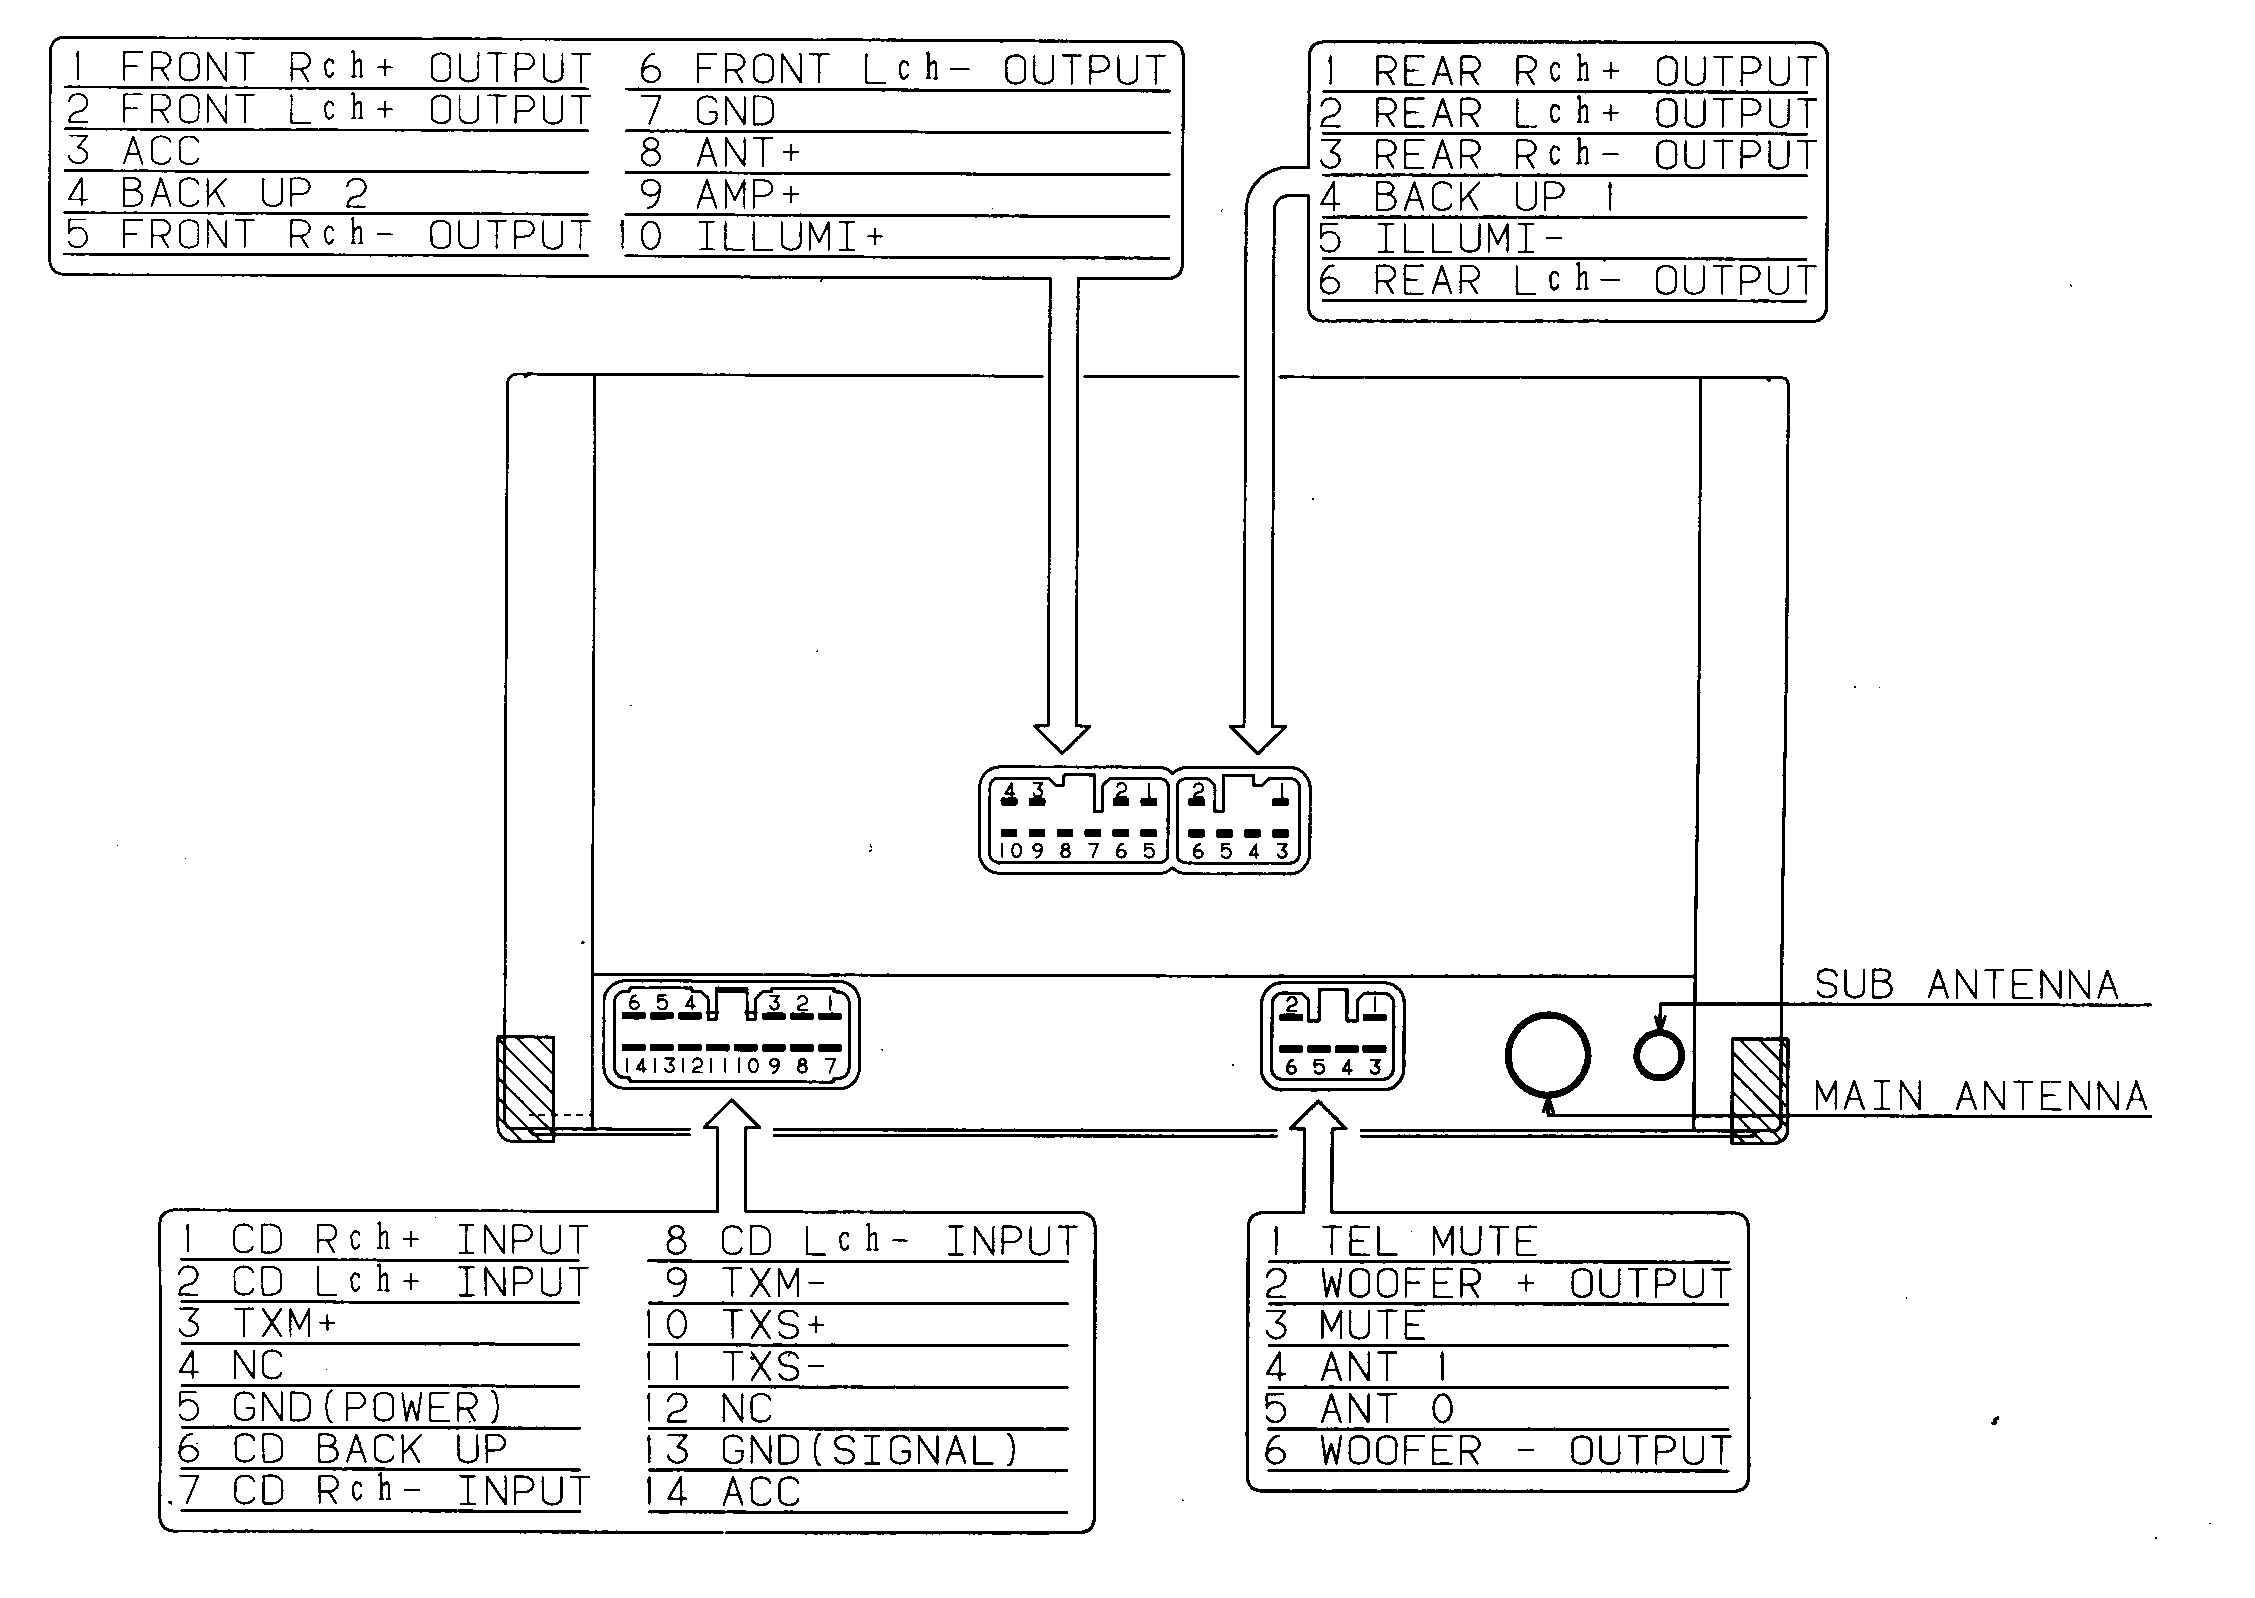 DIAGRAM] Delco Car Stereo Wiring Diagram Download Wiring Diagram FULL  Version HD Quality Wiring Diagram - STRUCTUREDPAY.VENISEPARANORMALE.FRstructuredpay.veniseparanormale.fr